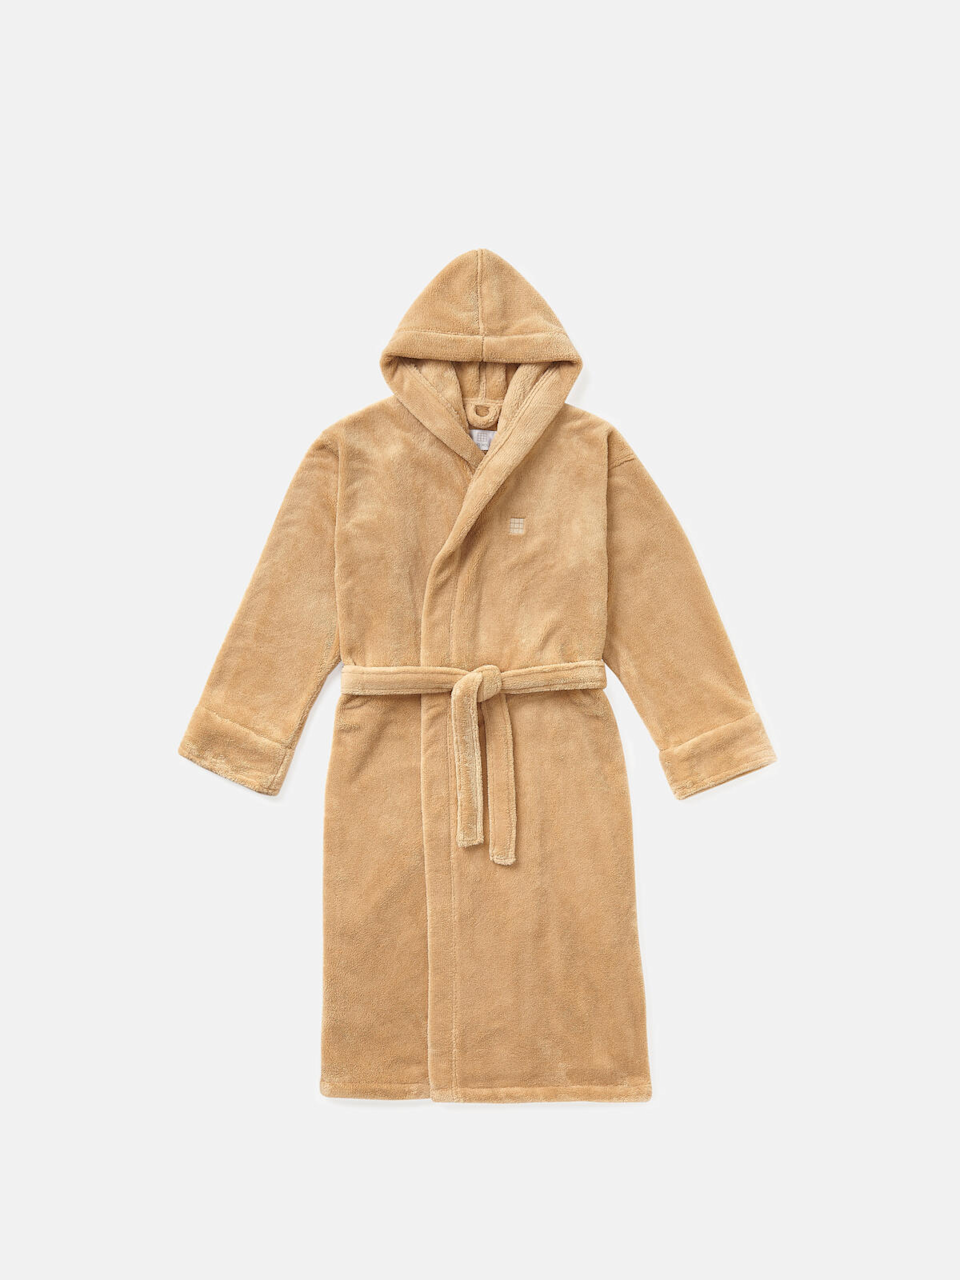 """<h2>Frette House Robe</h2><br>This extra luxurious, super fluffy house robe is perfect if you're trying to feel like your lounging in a chic five-star hotel. This robe includes a hood, attached belt, and is made from 100% recycled fabric. <br><br><br><br><strong>Frette</strong> House Robe, $, available at <a href=""""https://go.skimresources.com/?id=30283X879131&url=https%3A%2F%2Fwww.sohohome.com%2Fus%2Fproducts%2Fhouse-robe%2F75140003"""" rel=""""nofollow noopener"""" target=""""_blank"""" data-ylk=""""slk:Soho Home"""" class=""""link rapid-noclick-resp"""">Soho Home</a>"""